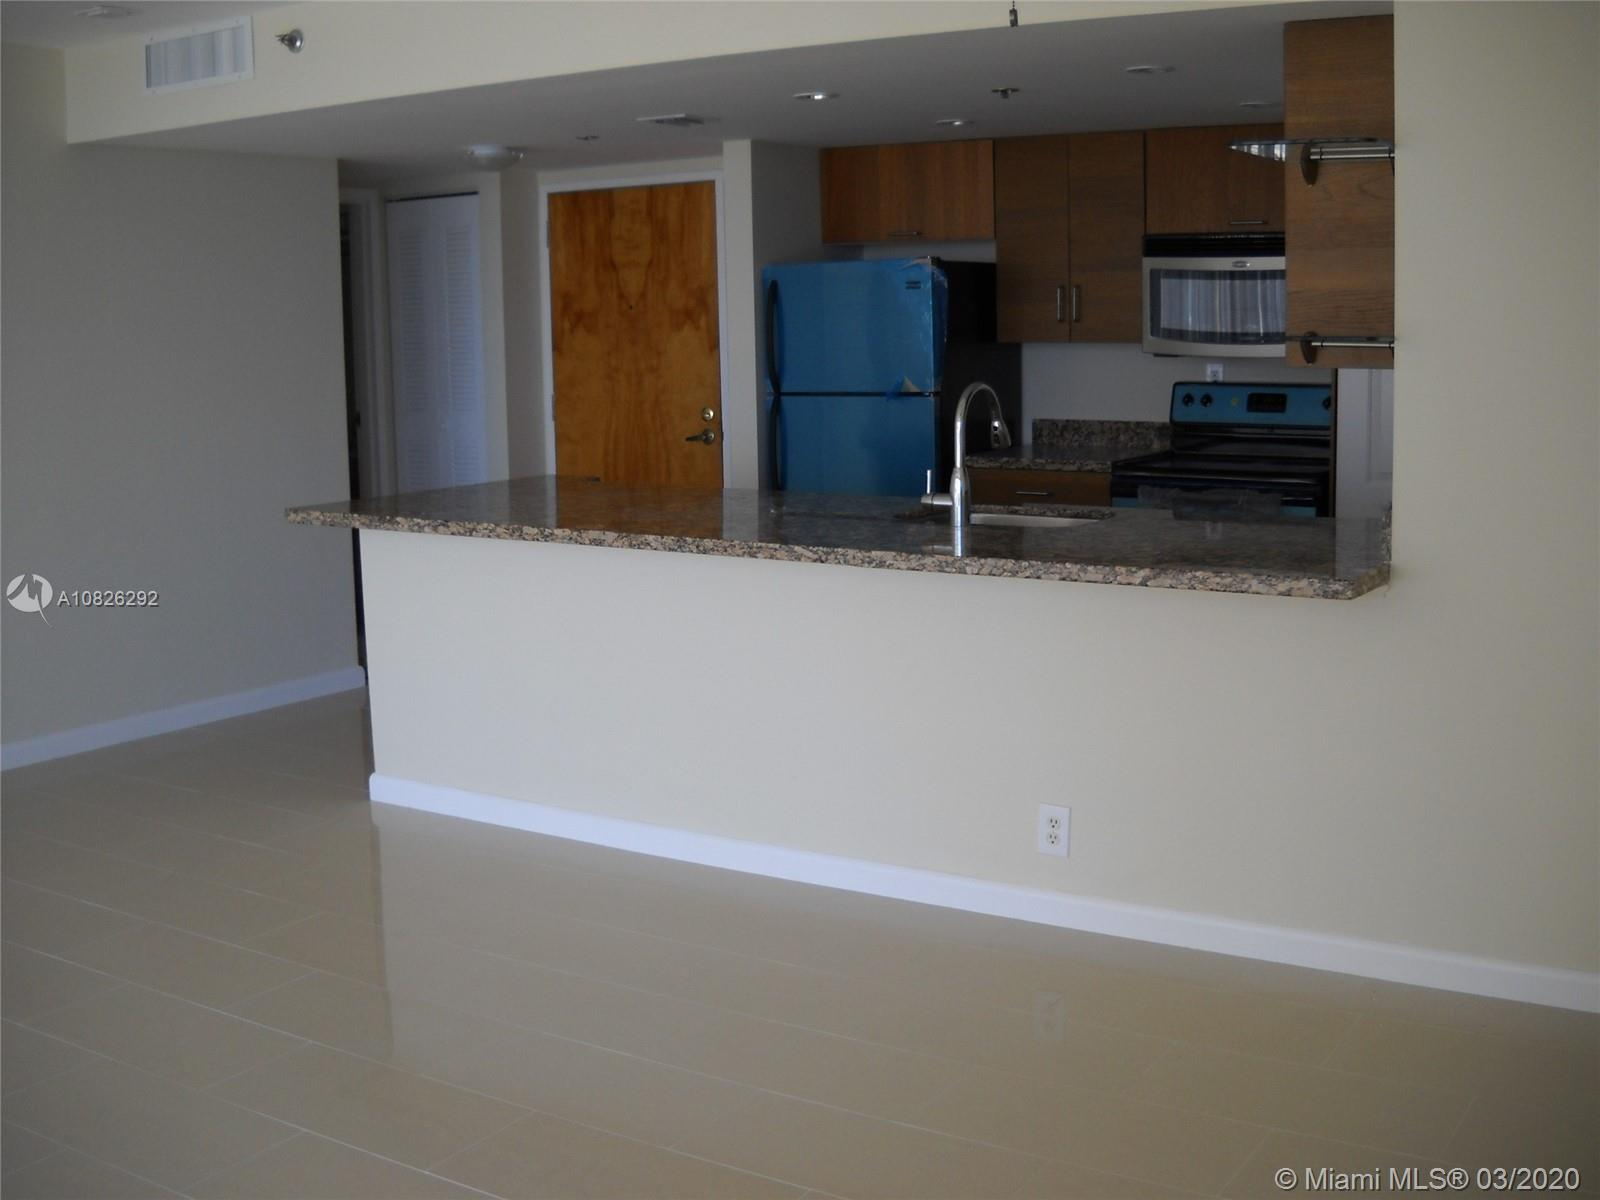 Gorgeous water views. 2 bedrooms/ 2 bathrooms, compl remodeled. Porcelain floors throughout. Open ki